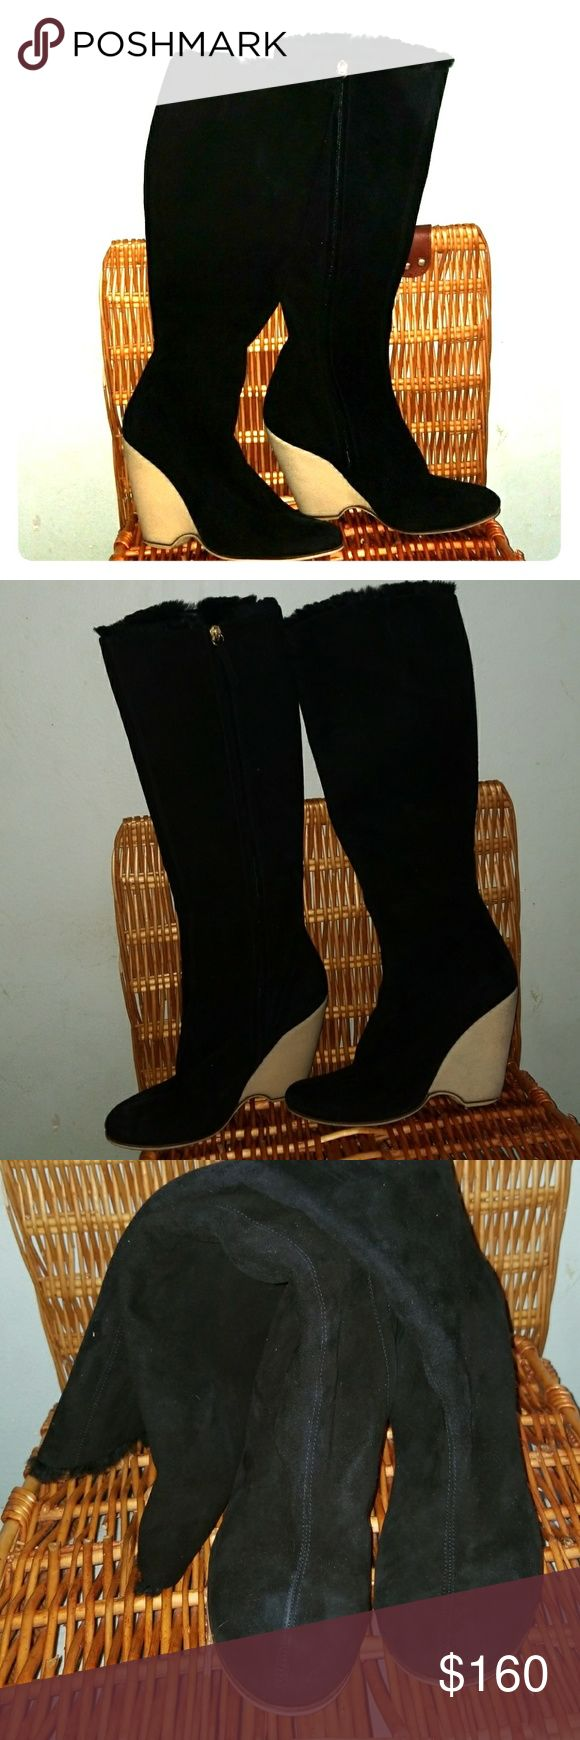 "Giuseppe Zanotti Design suede boots Italy Fabulous pair! Black suede upper. Inside zipper closure. White wedge. Sheared fur lining, can't tell if it's a rabbit or mink. No size markings, my kid tried it on, his foot is 10"", it fits, so its= size 9, 9.5. Moderate wear to the heels. Made in Italy. Giuseppe Zanotti Shoes Heeled Boots"